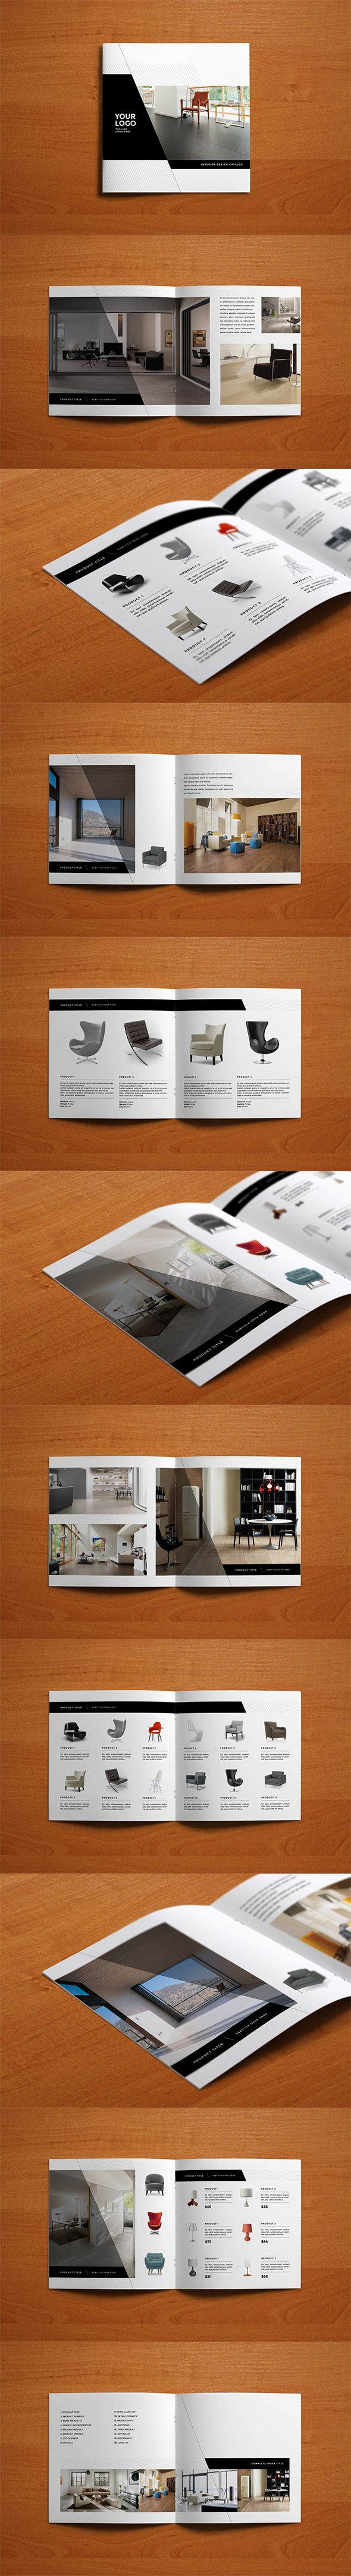 best 25+ catalog design ideas on pinterest | portfolio layout